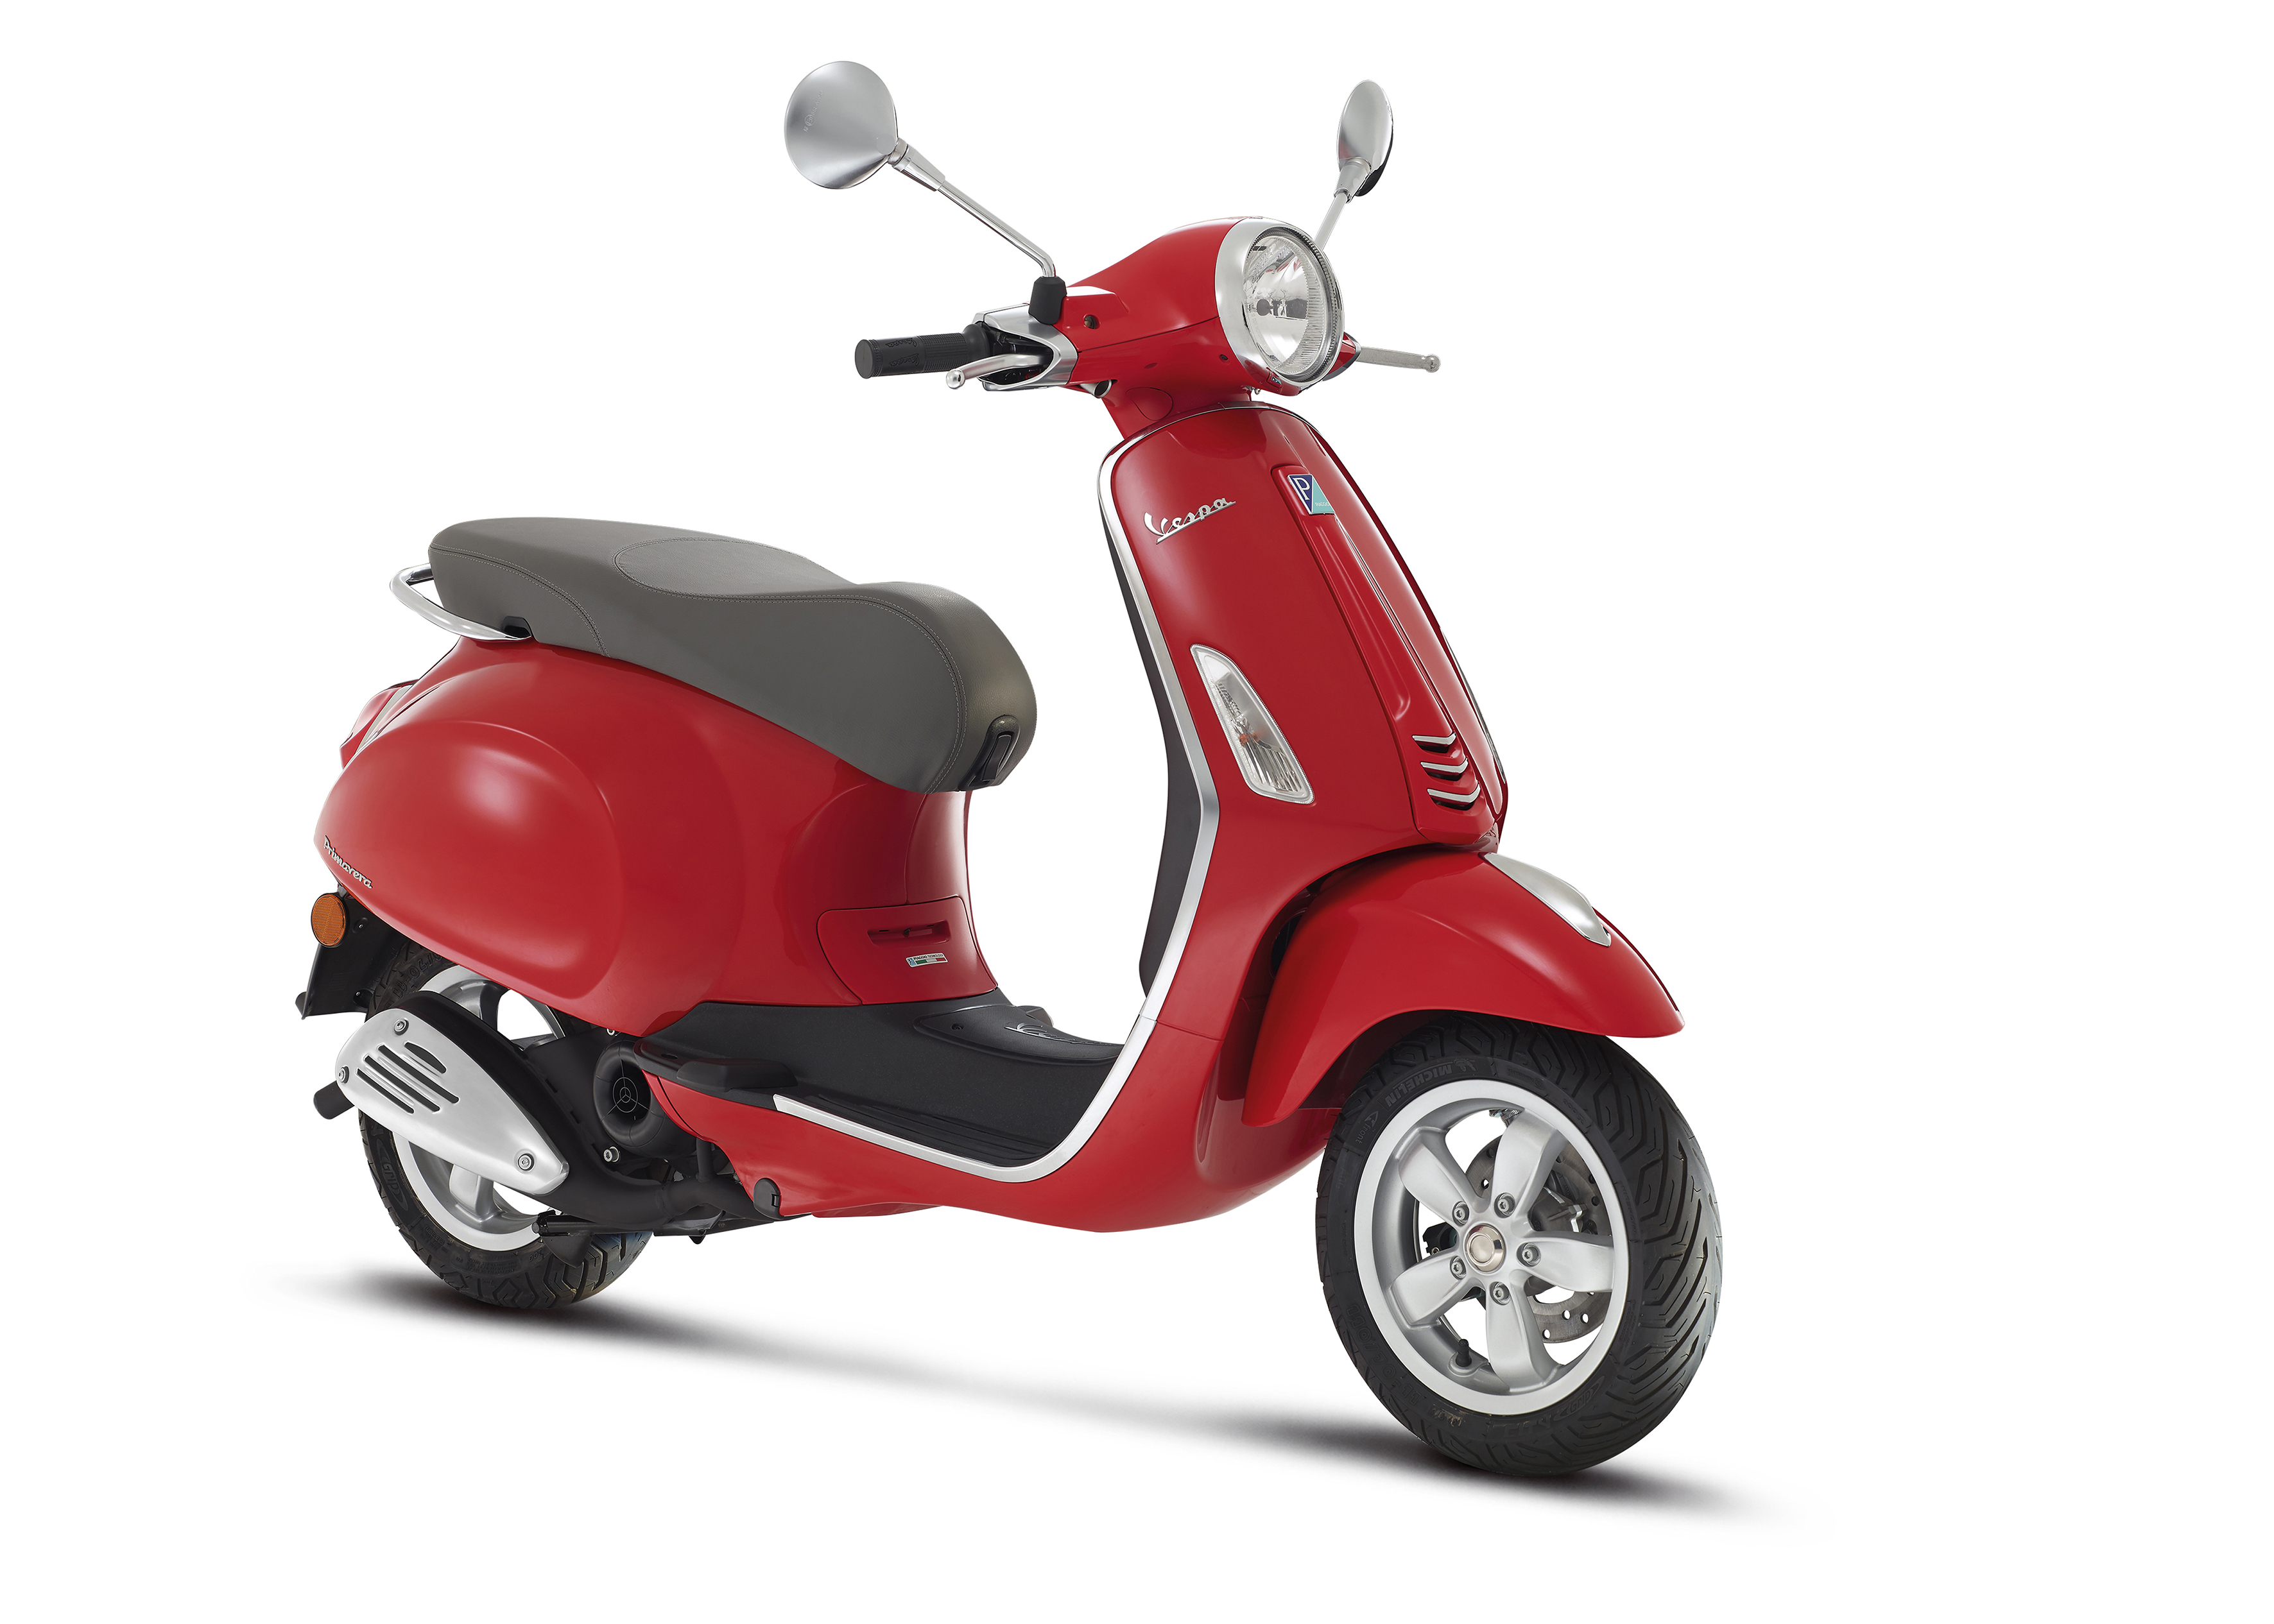 Click here to read or add to vespa lx 125 owners reviews